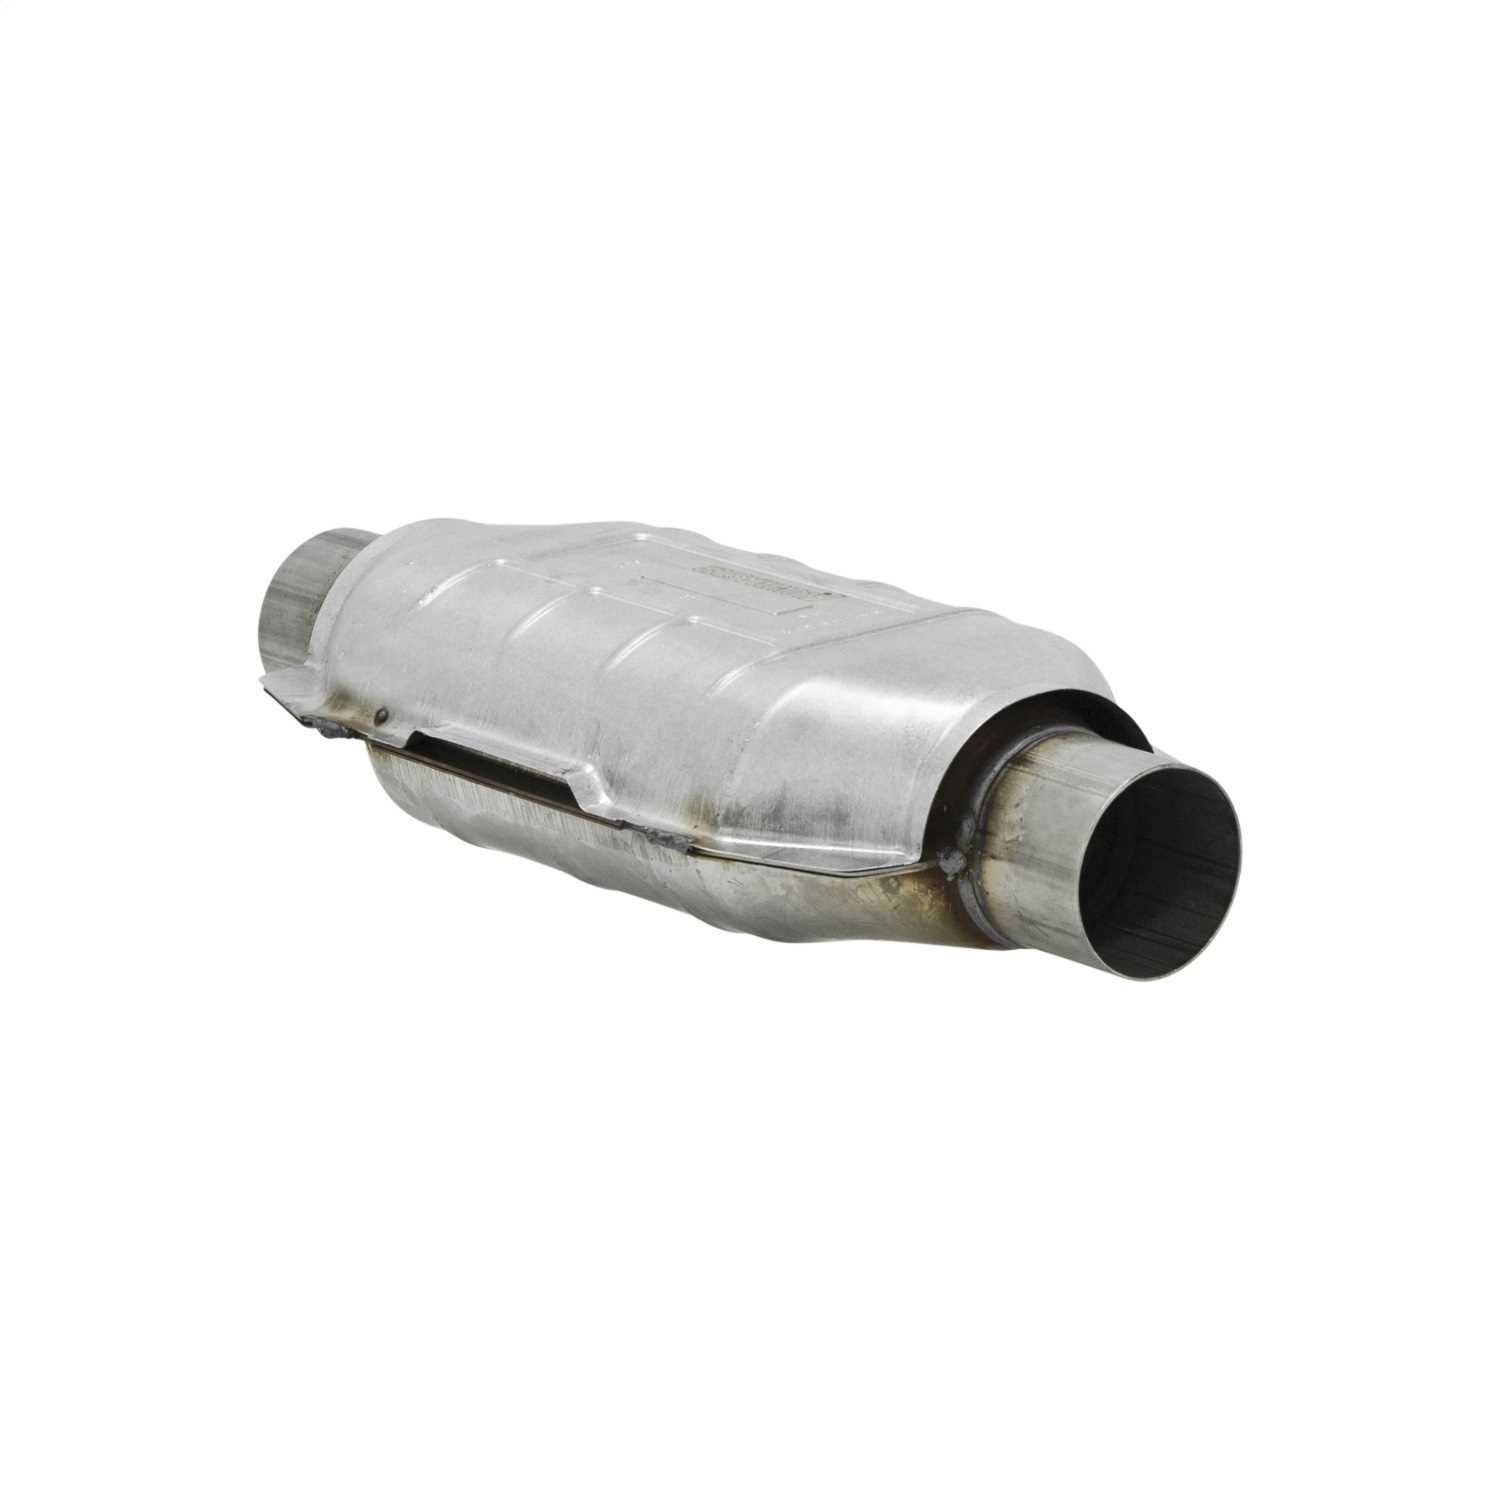 2840230 Flowmaster 49 State Catalytic Converters Universal Catalytic Converter